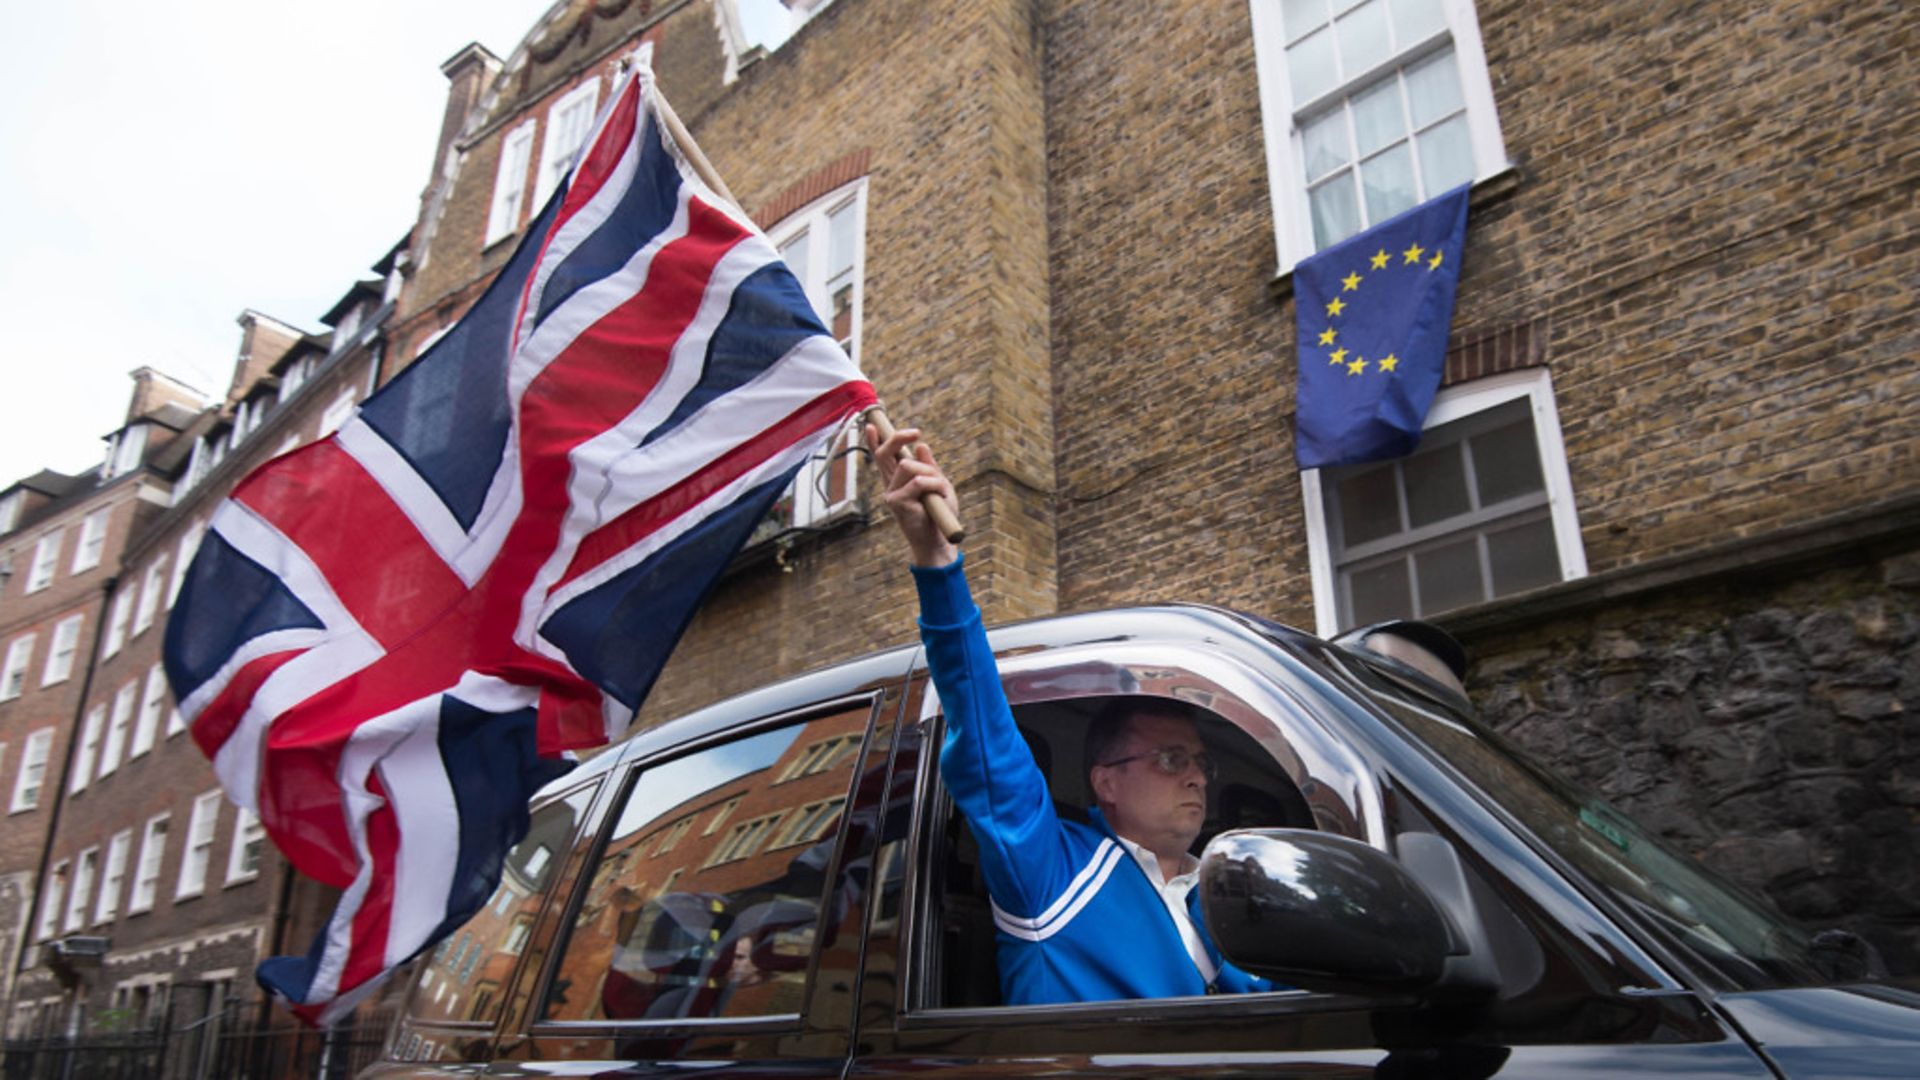 A London taxi driver waves a Union Jack flag in Westminster after the Brexit vote - Credit: PA